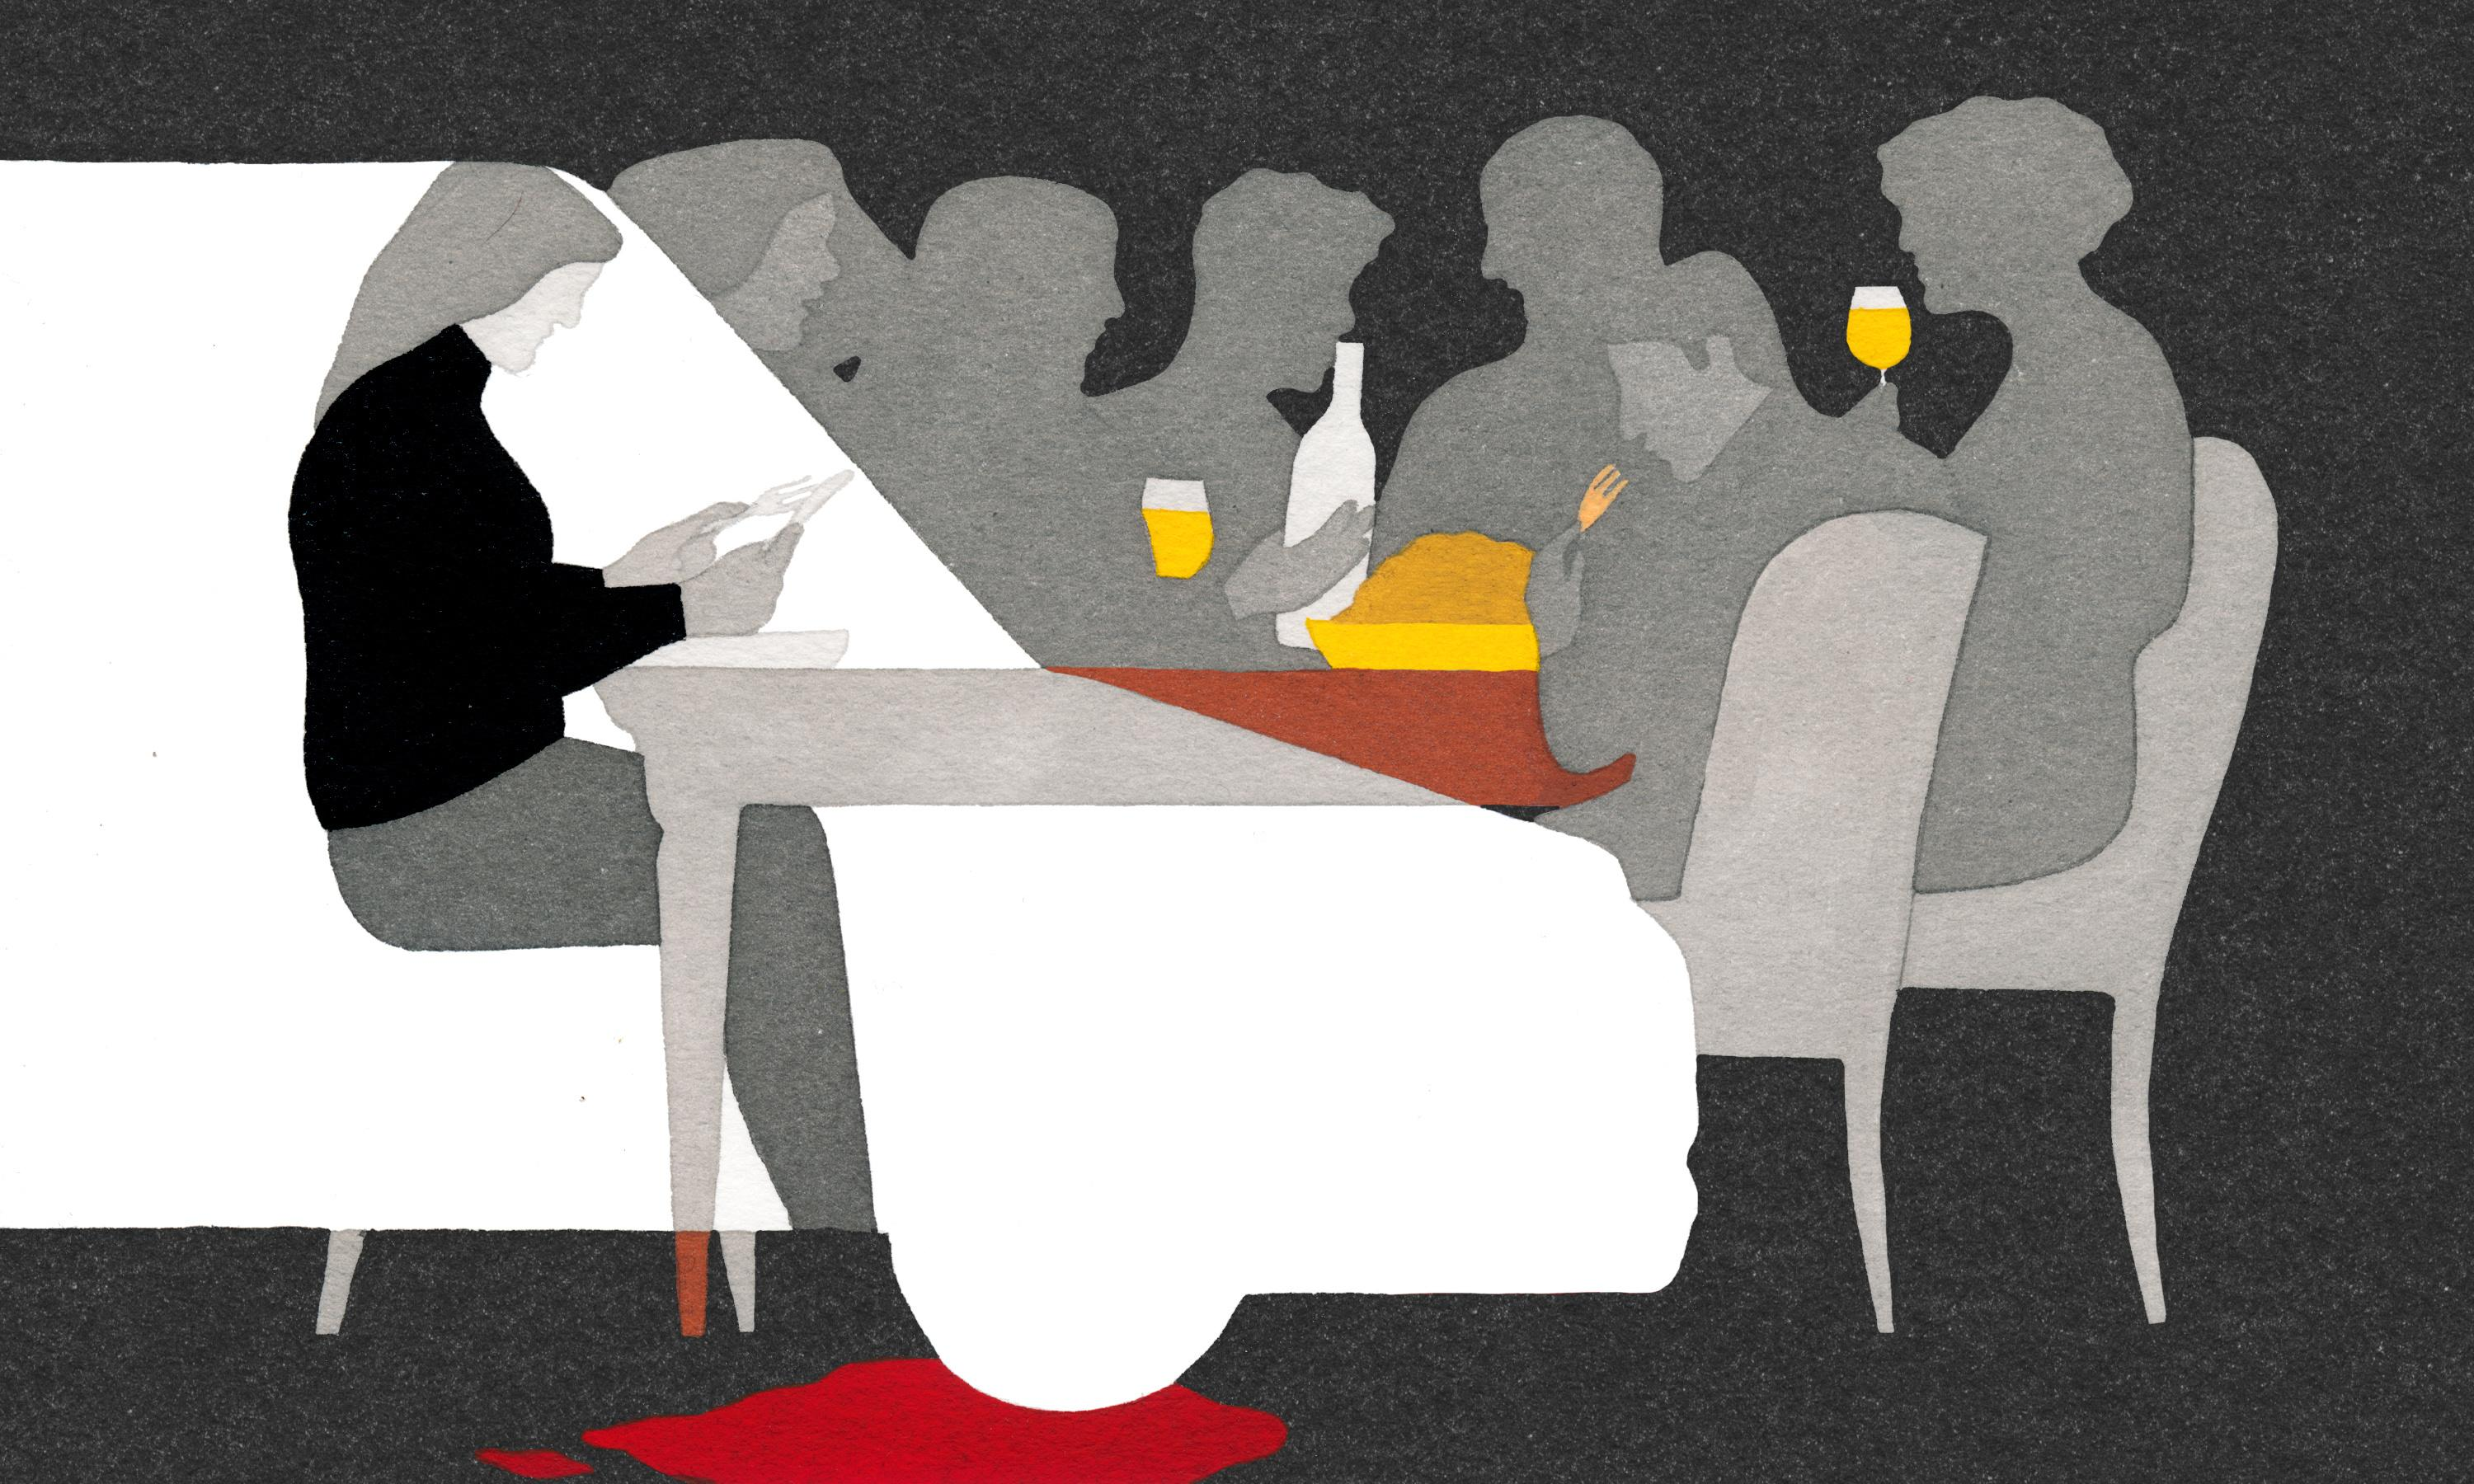 What happens to your life after you accidentally kill someone?